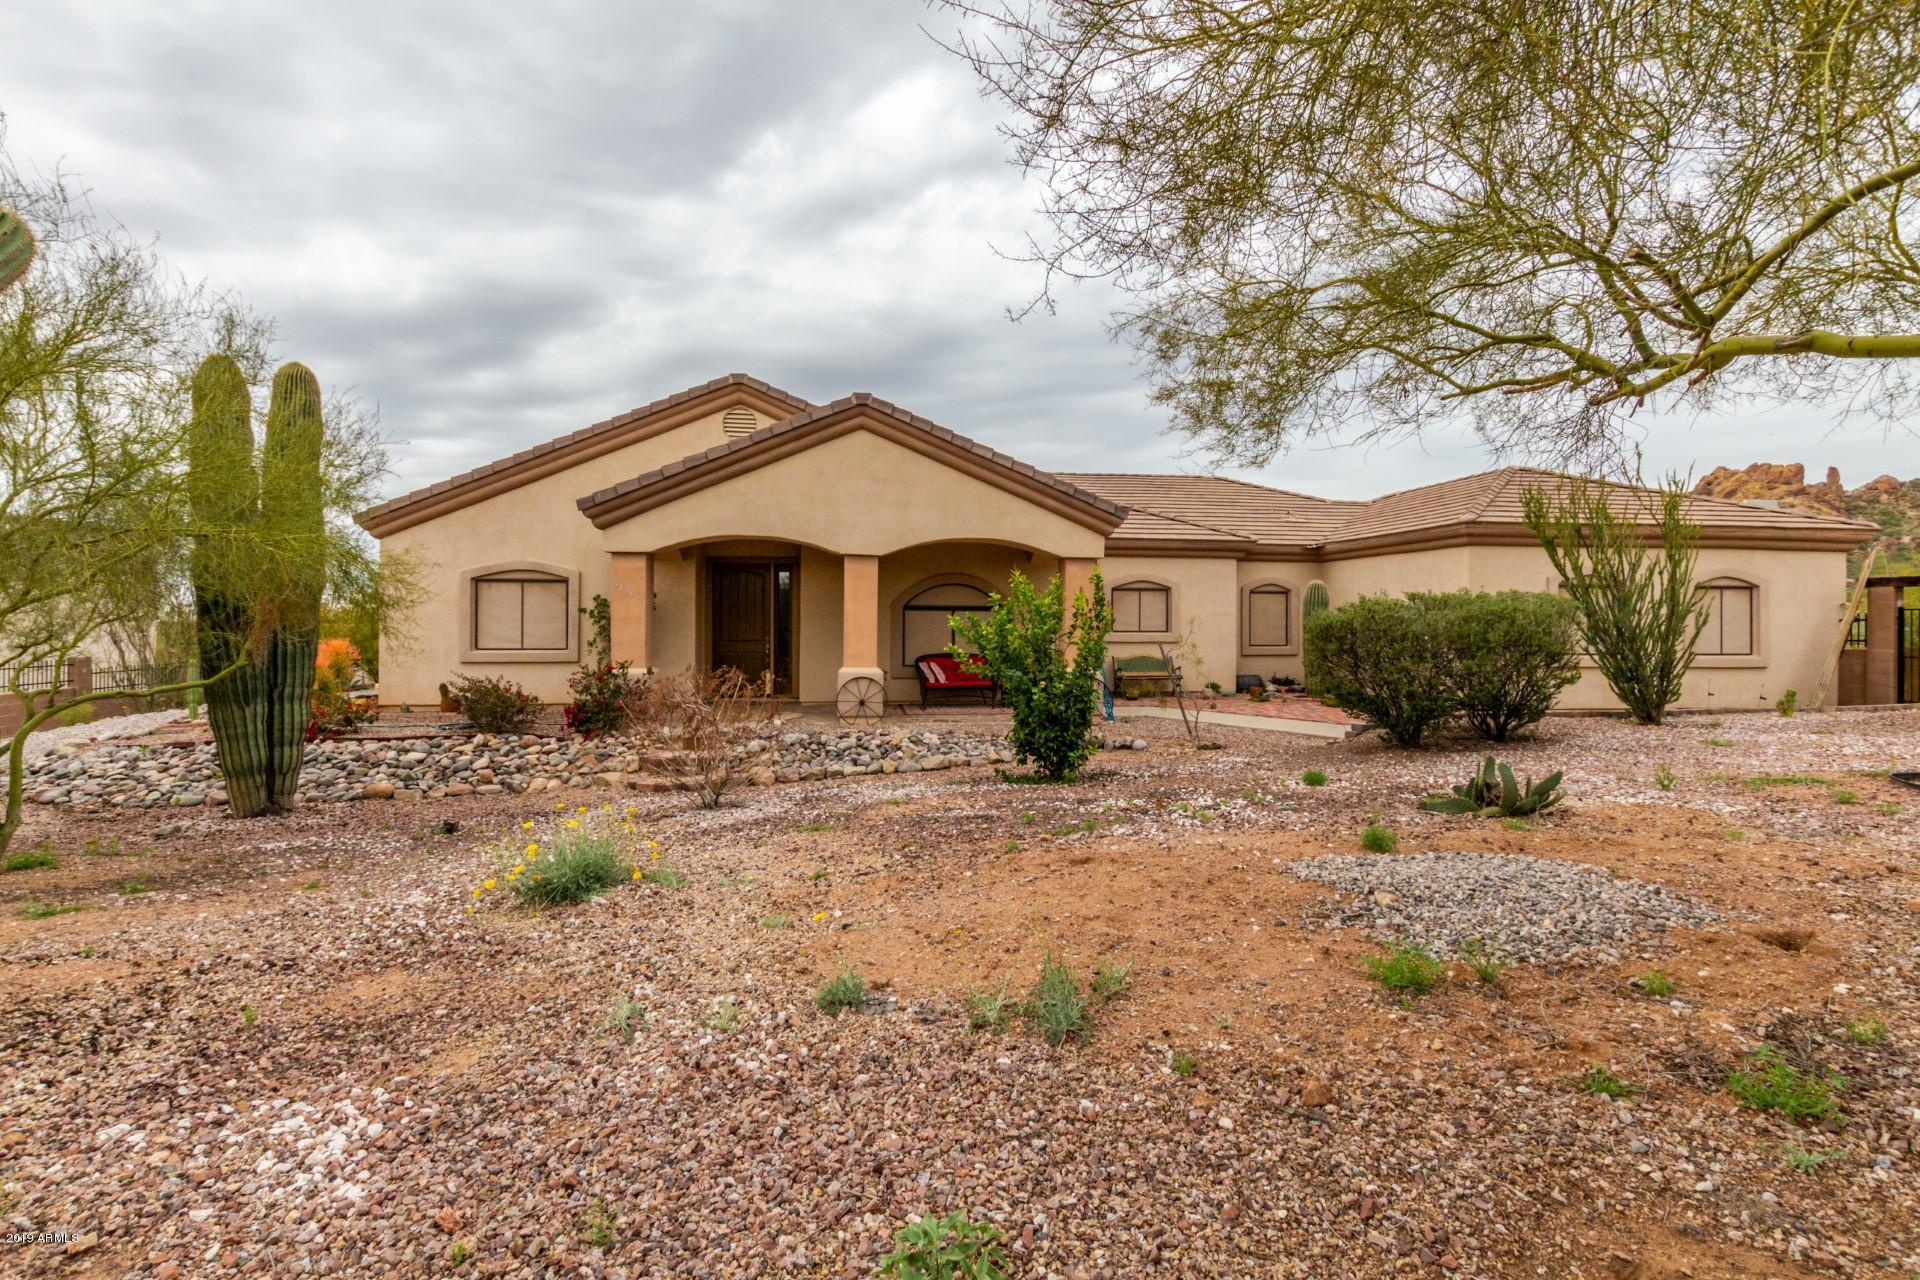 Photo of 5136 N WOLVERINE PASS Road, Apache Junction, AZ 85119